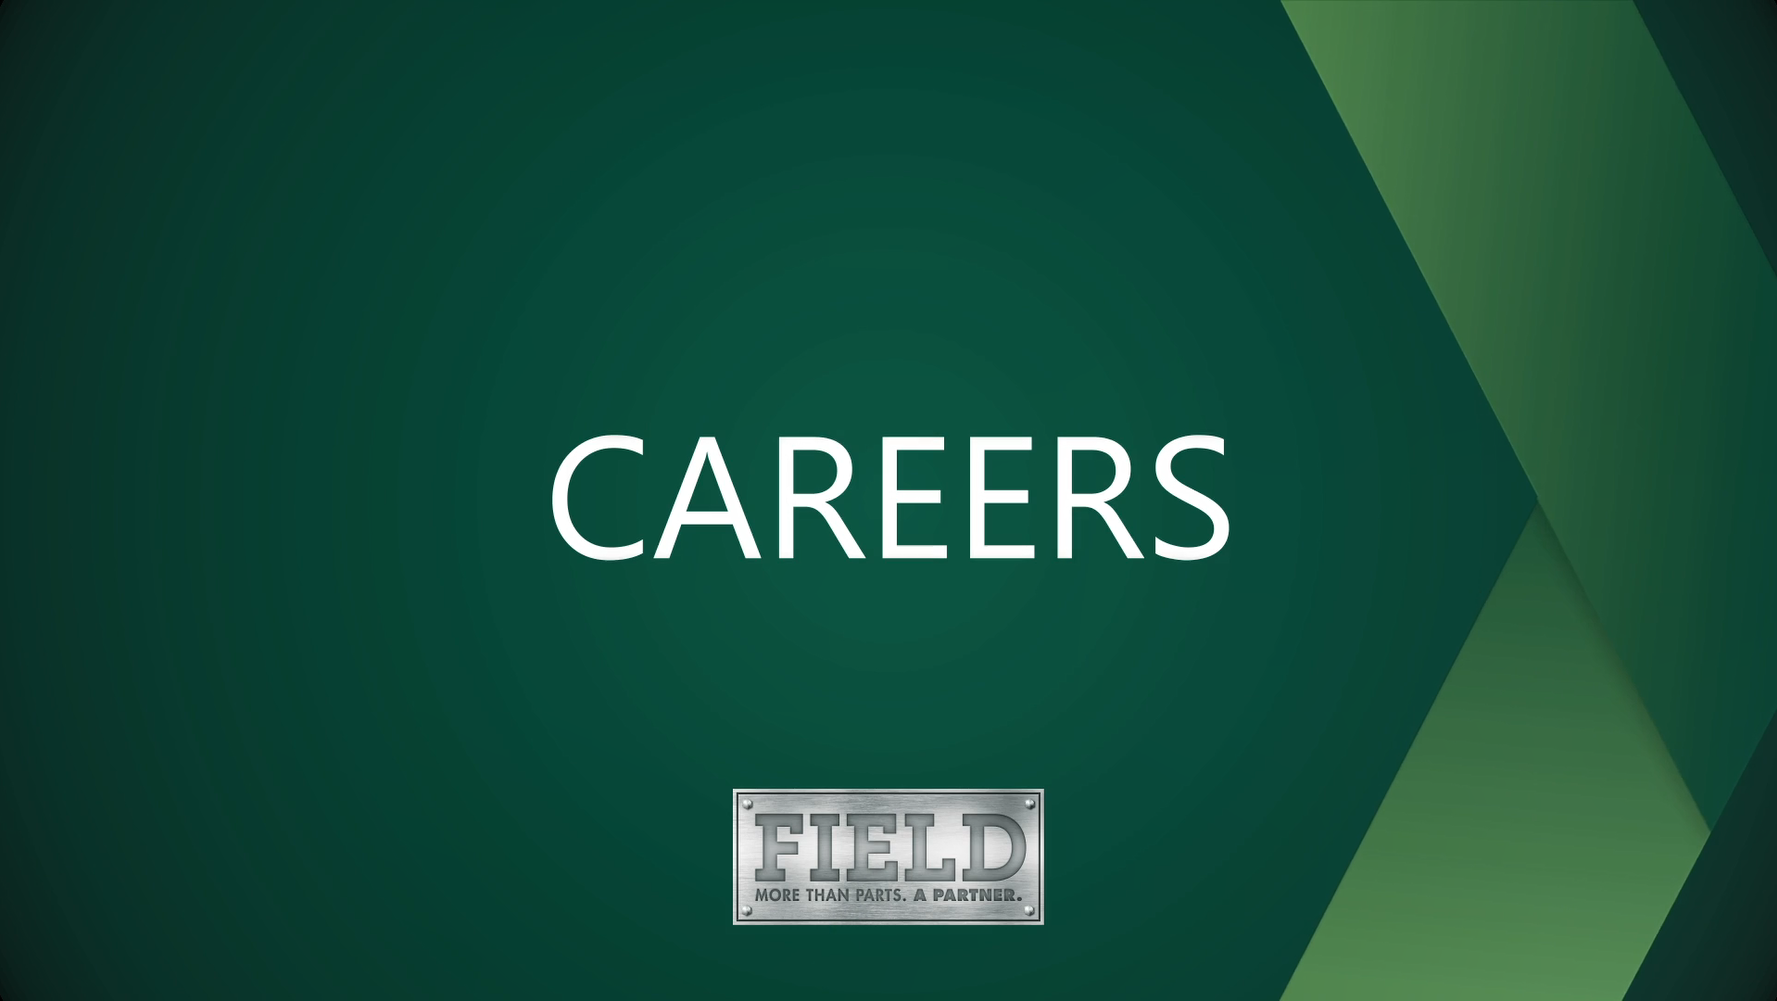 Field Fastener- Careers and Culture